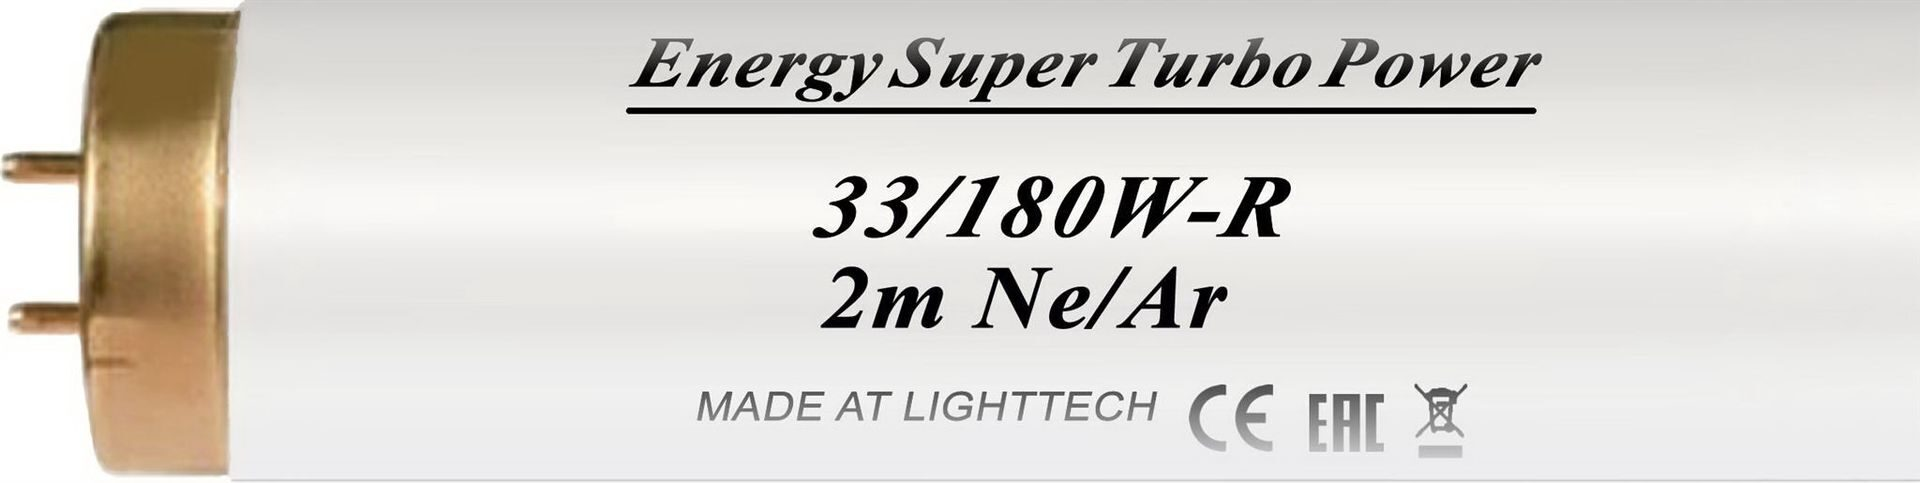 Super Turbo Power lamp 180W-R 200sm (33)